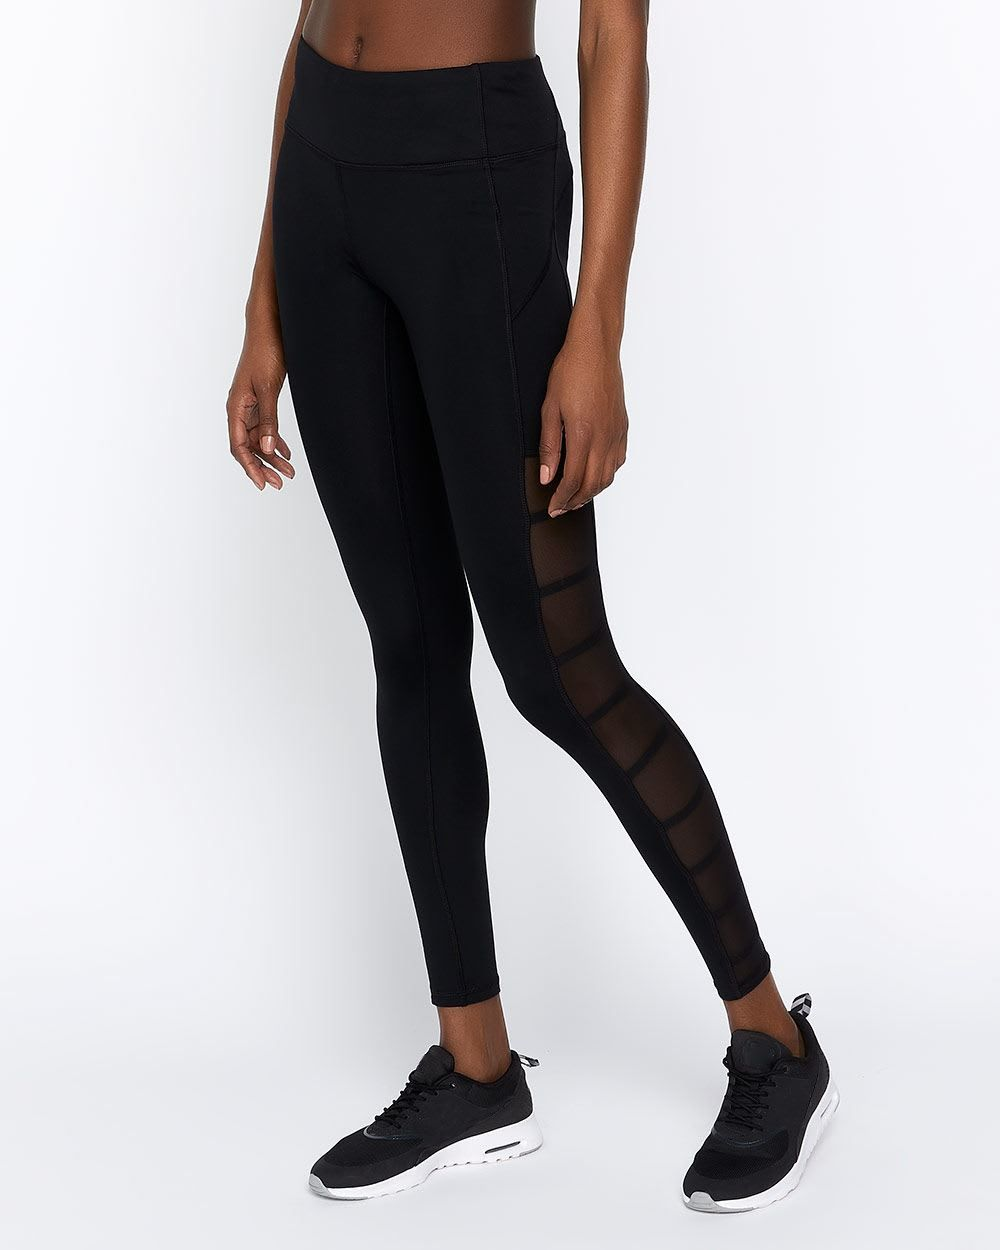 a2bc21decc3ed Shop online for Hyba Mesh Training Legging. Find Pants, HYBA Activewear and  more at Reitmans